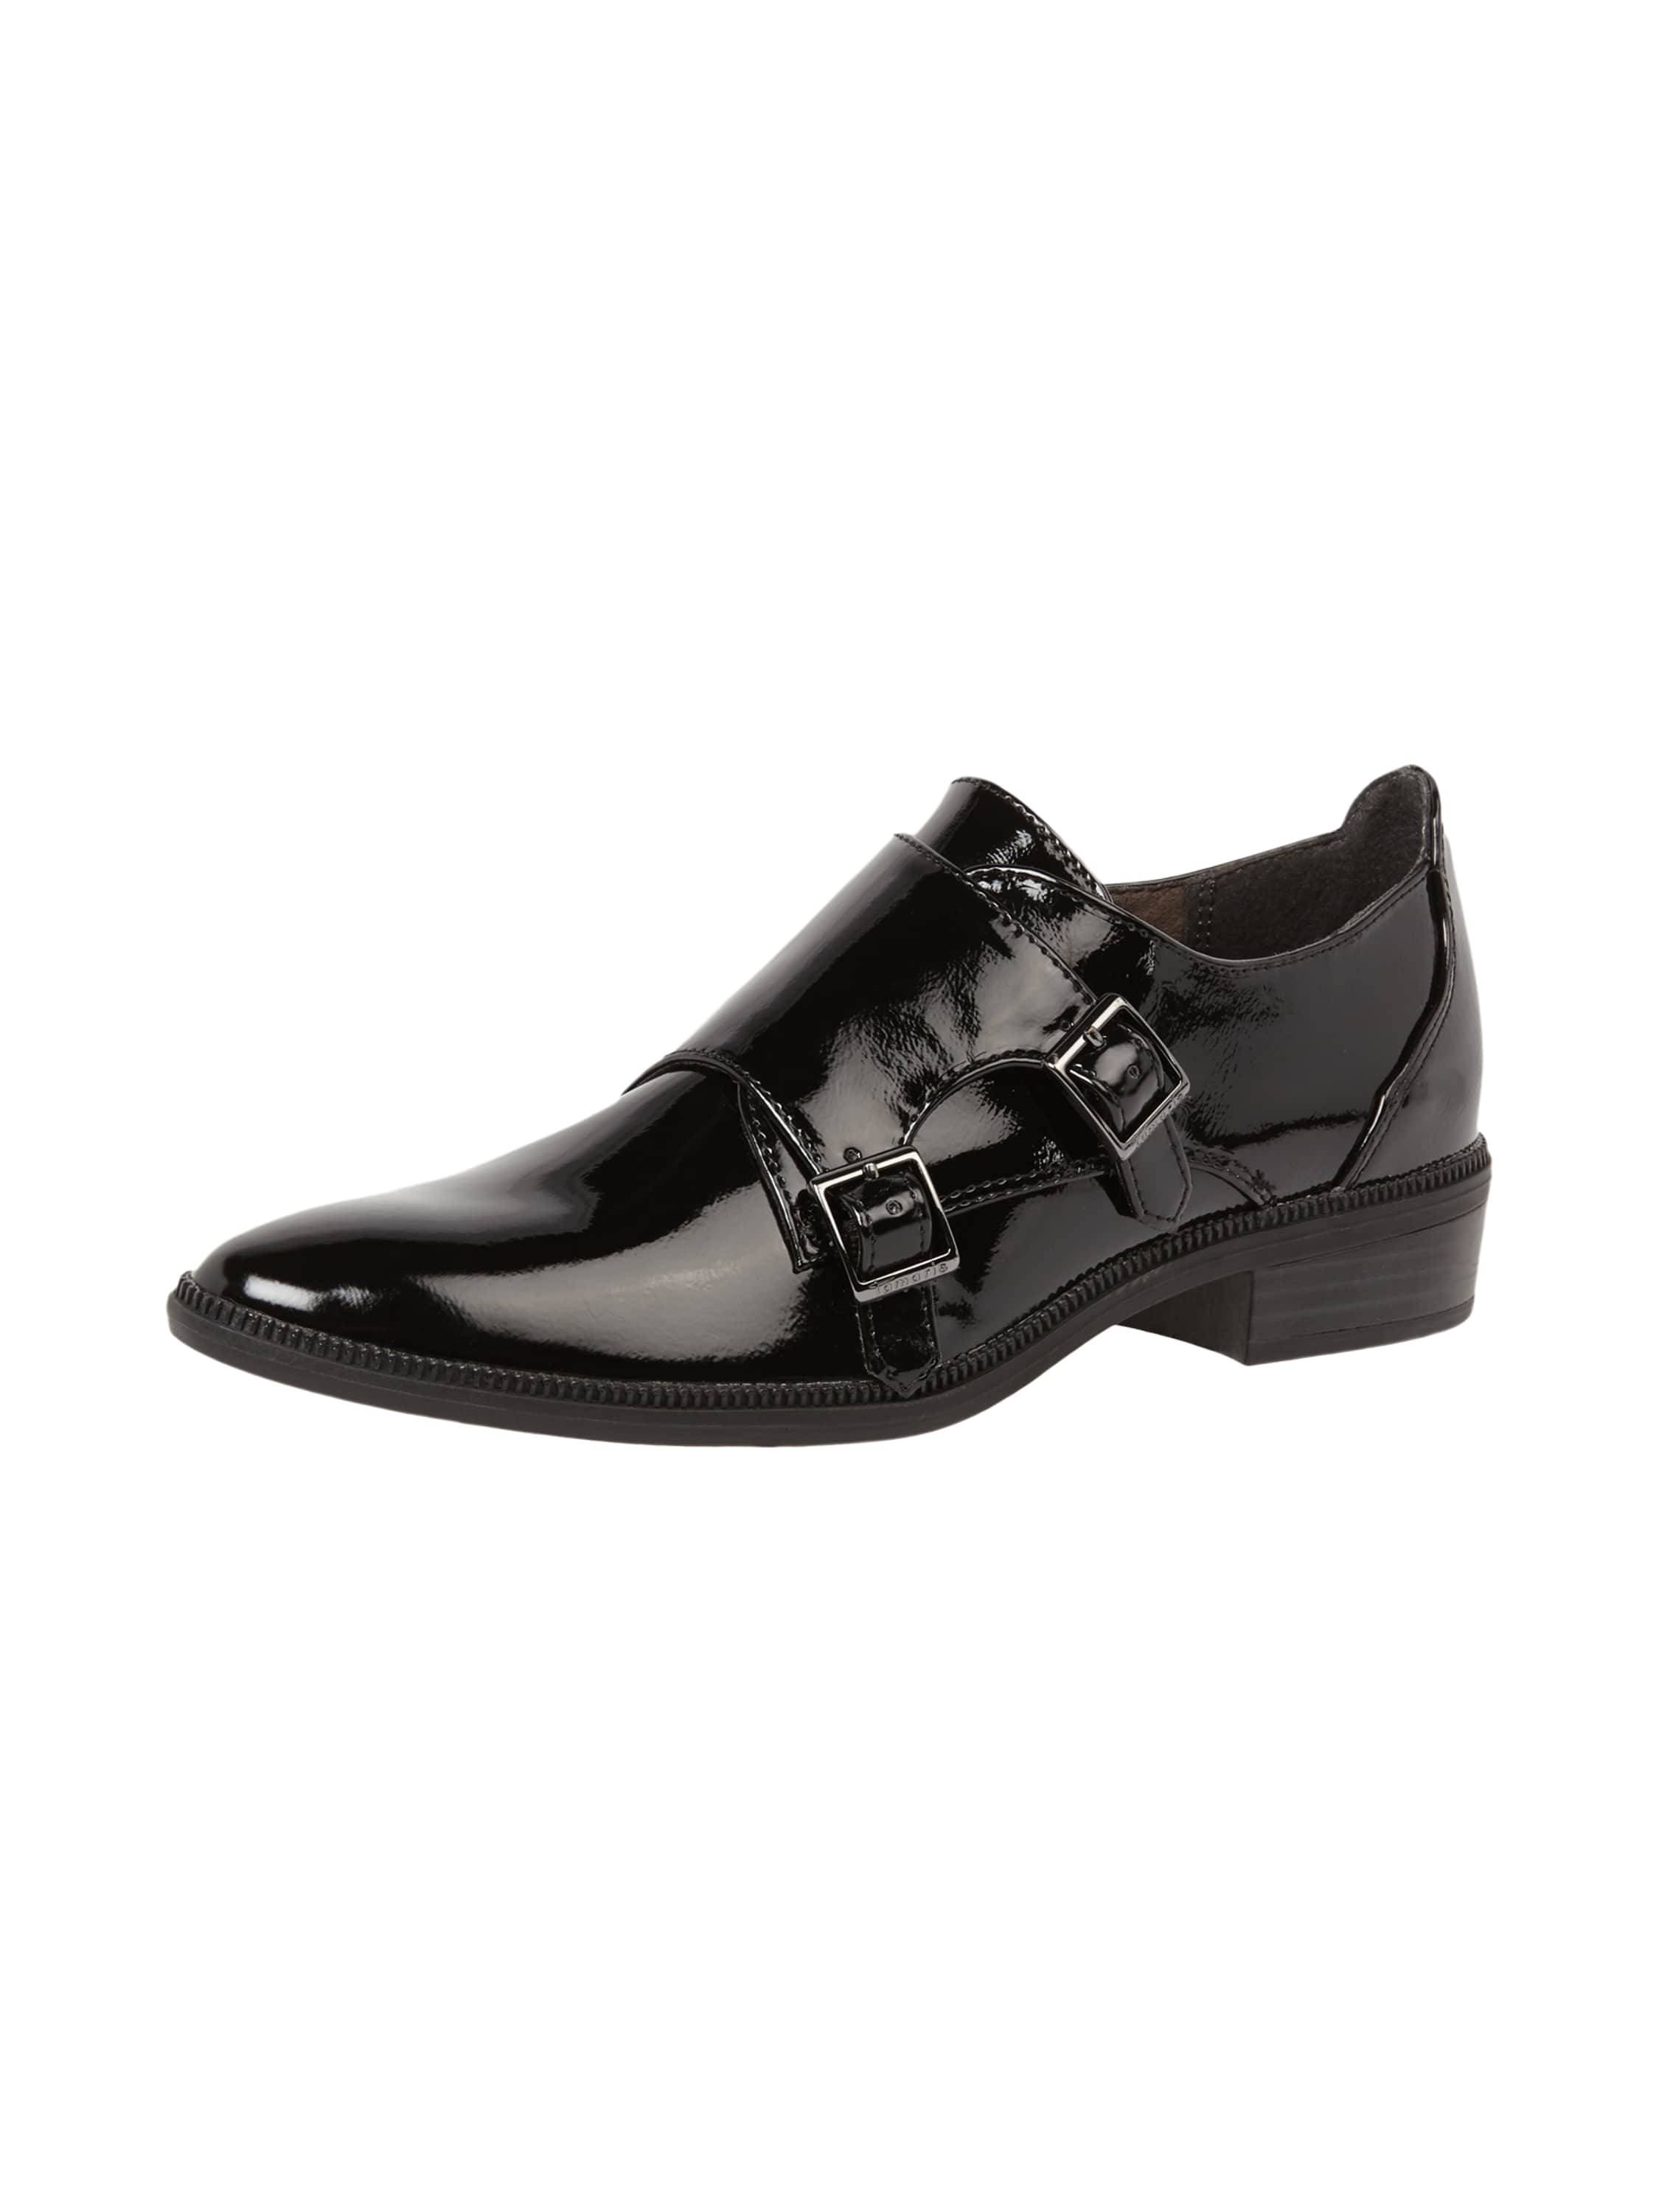 double monk straps in lackleder optik fashion id online shop. Black Bedroom Furniture Sets. Home Design Ideas